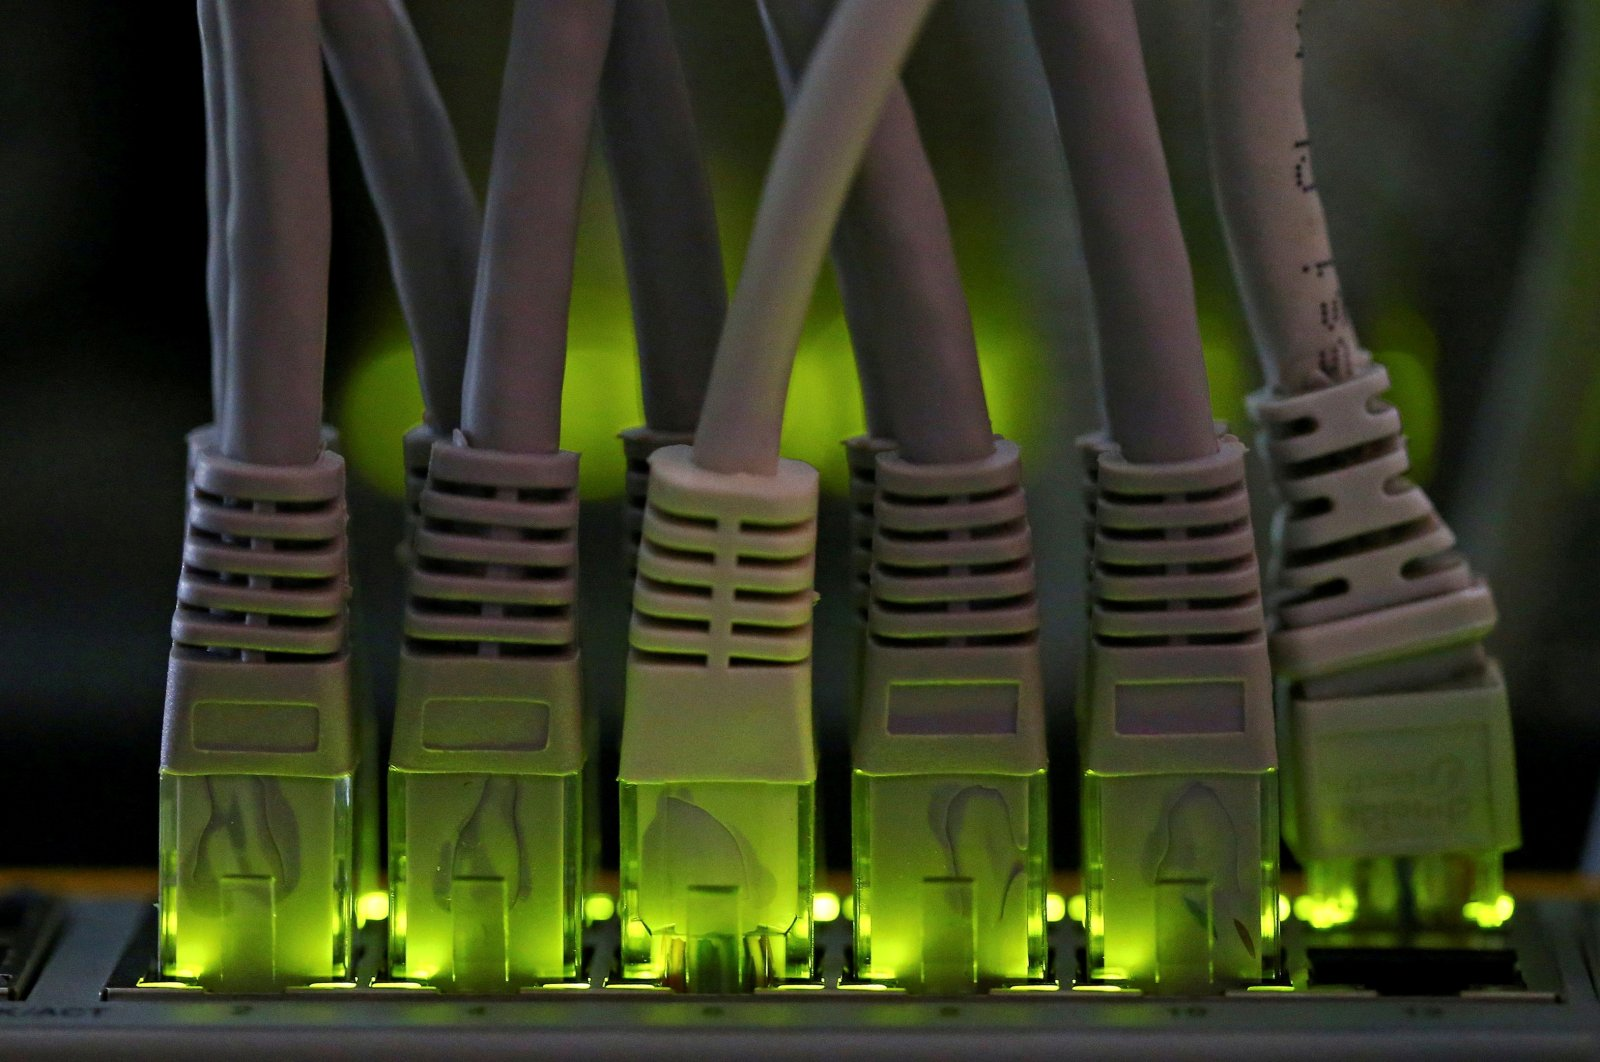 LAN network cables plugged into a Bitcoin mining computer server are pictured in Bitminer Factory in Florence, Italy, April 6, 2018. (Reuters Photo)